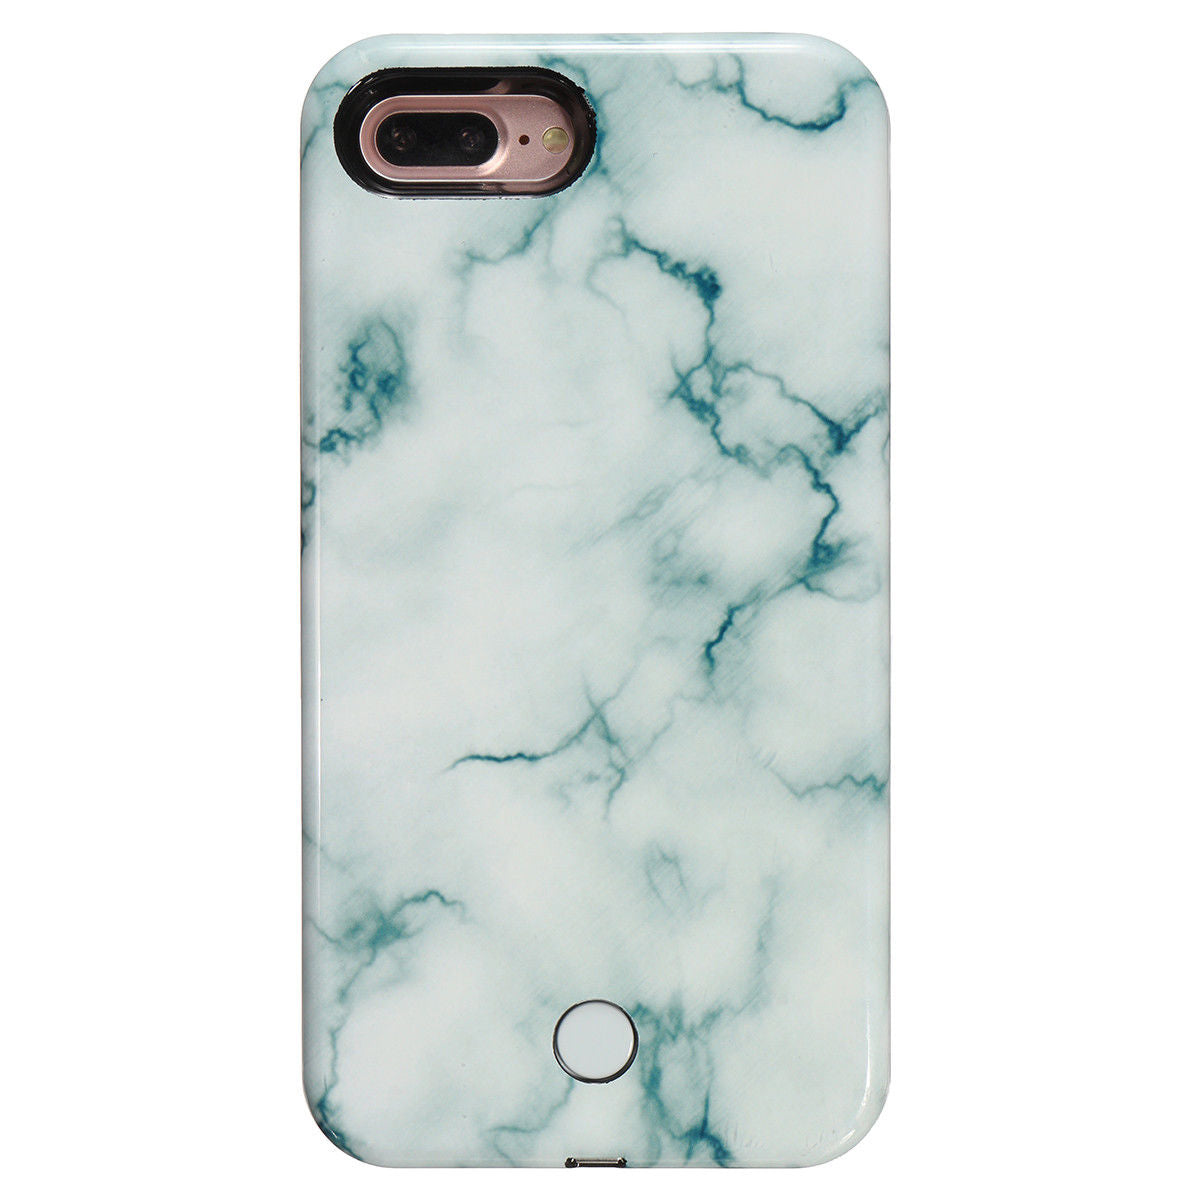 LED 3D Marble Iphone Case